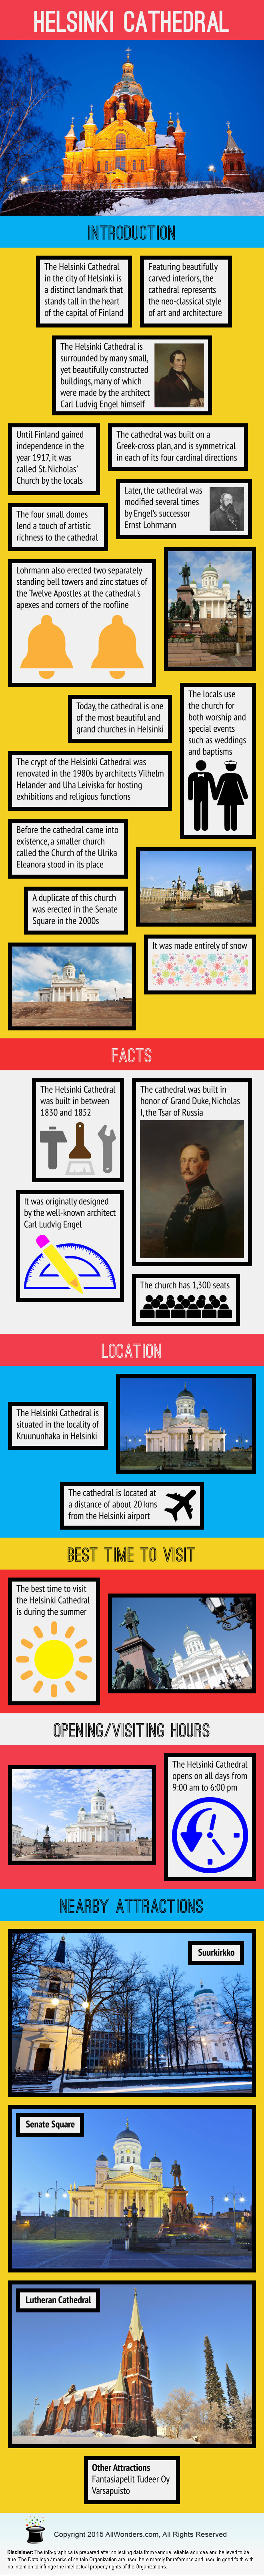 Helsinki Cathedral Infographic